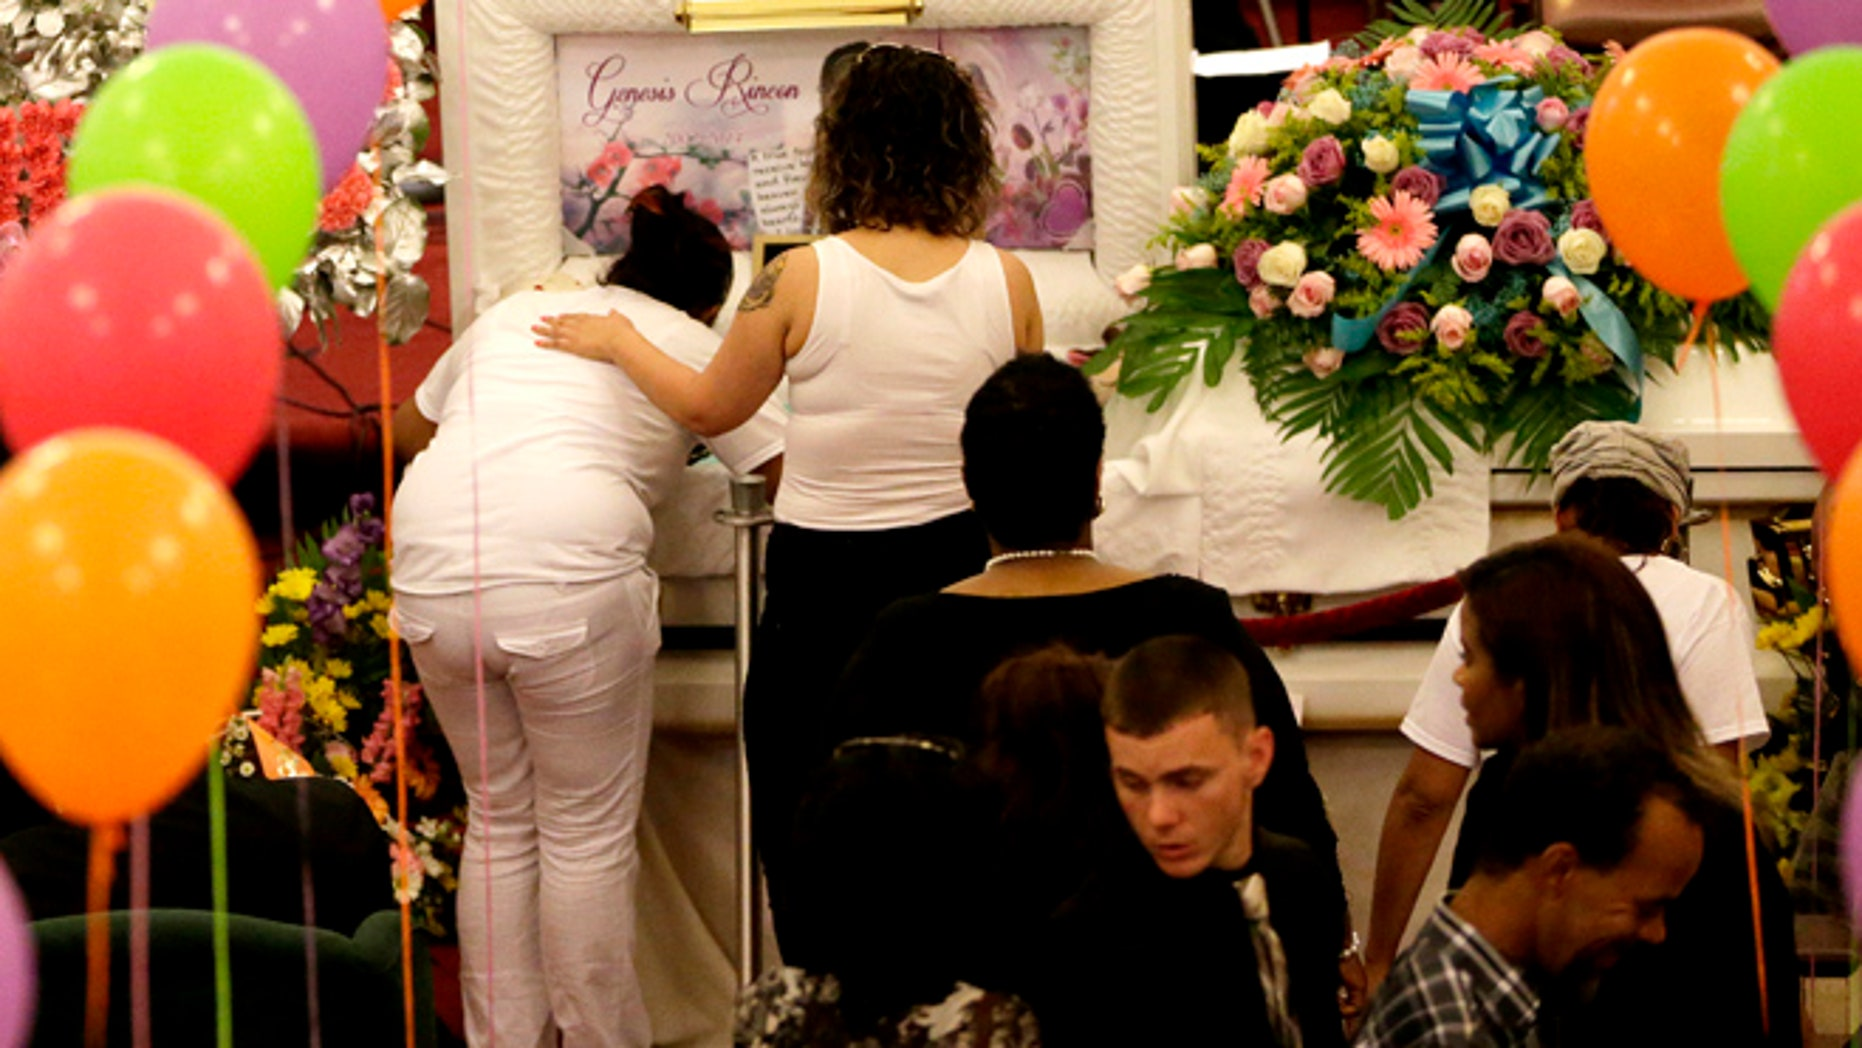 July 11, 2014: Jenny Calderon, left, is comforted by a woman as she leans into the casket containing the body of her daughter, Genesis Rincon, 12, who was hit by a stray bullet while riding a scooter, during the girl's funeral in Paterson, N.J.